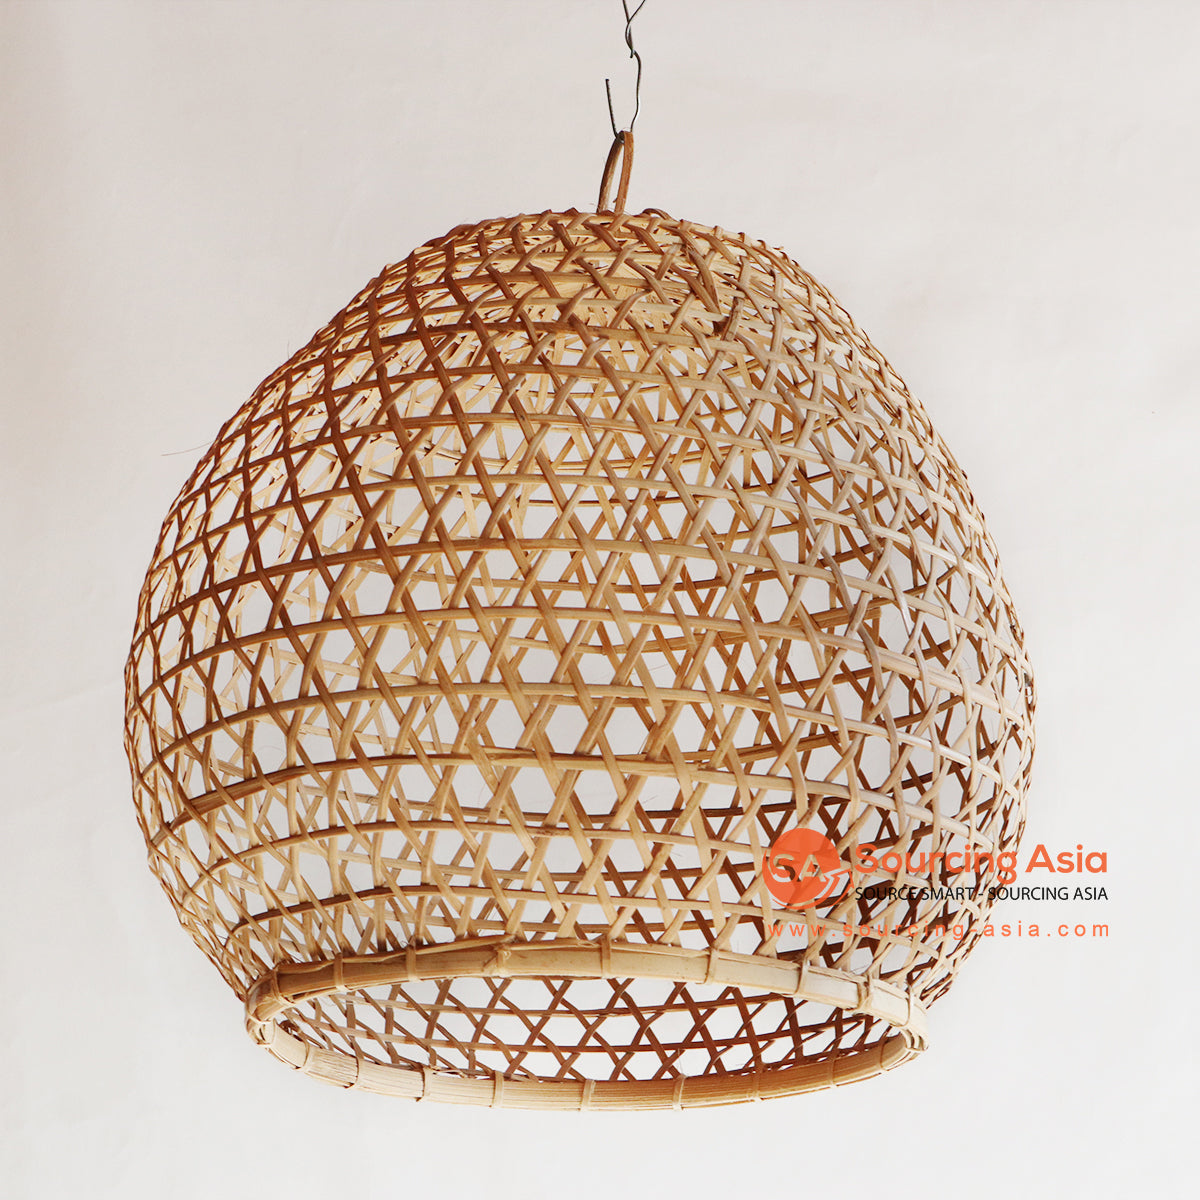 YLLC088 BAMBOO CHICKEN CAGE HANGING LAMP